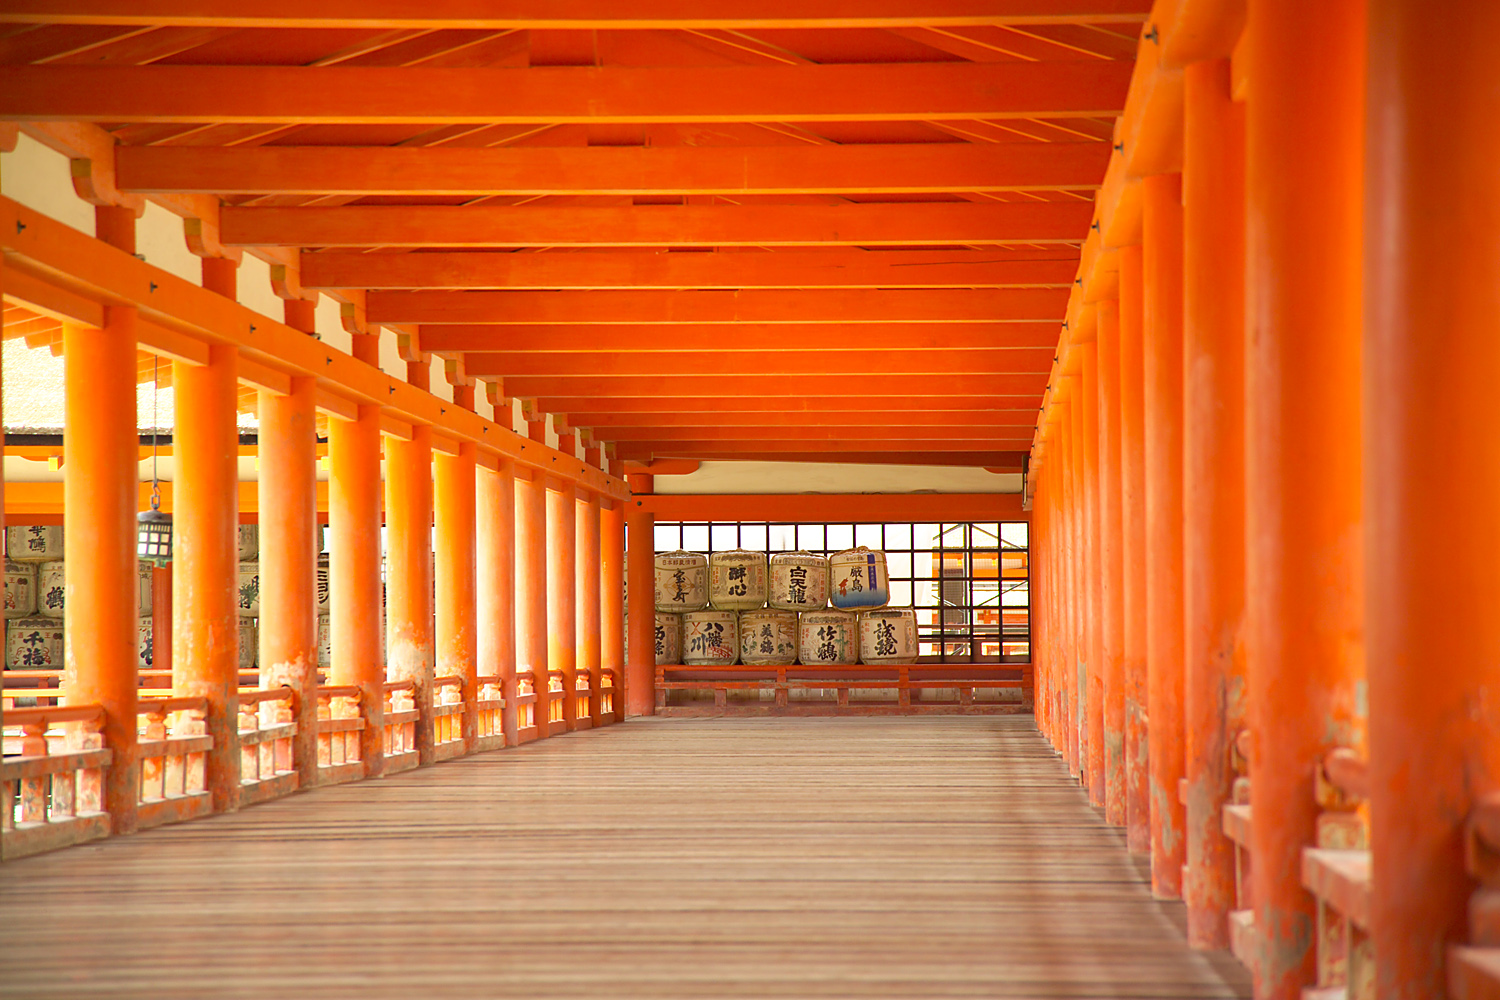 Passageway at Itsukushima Shrine